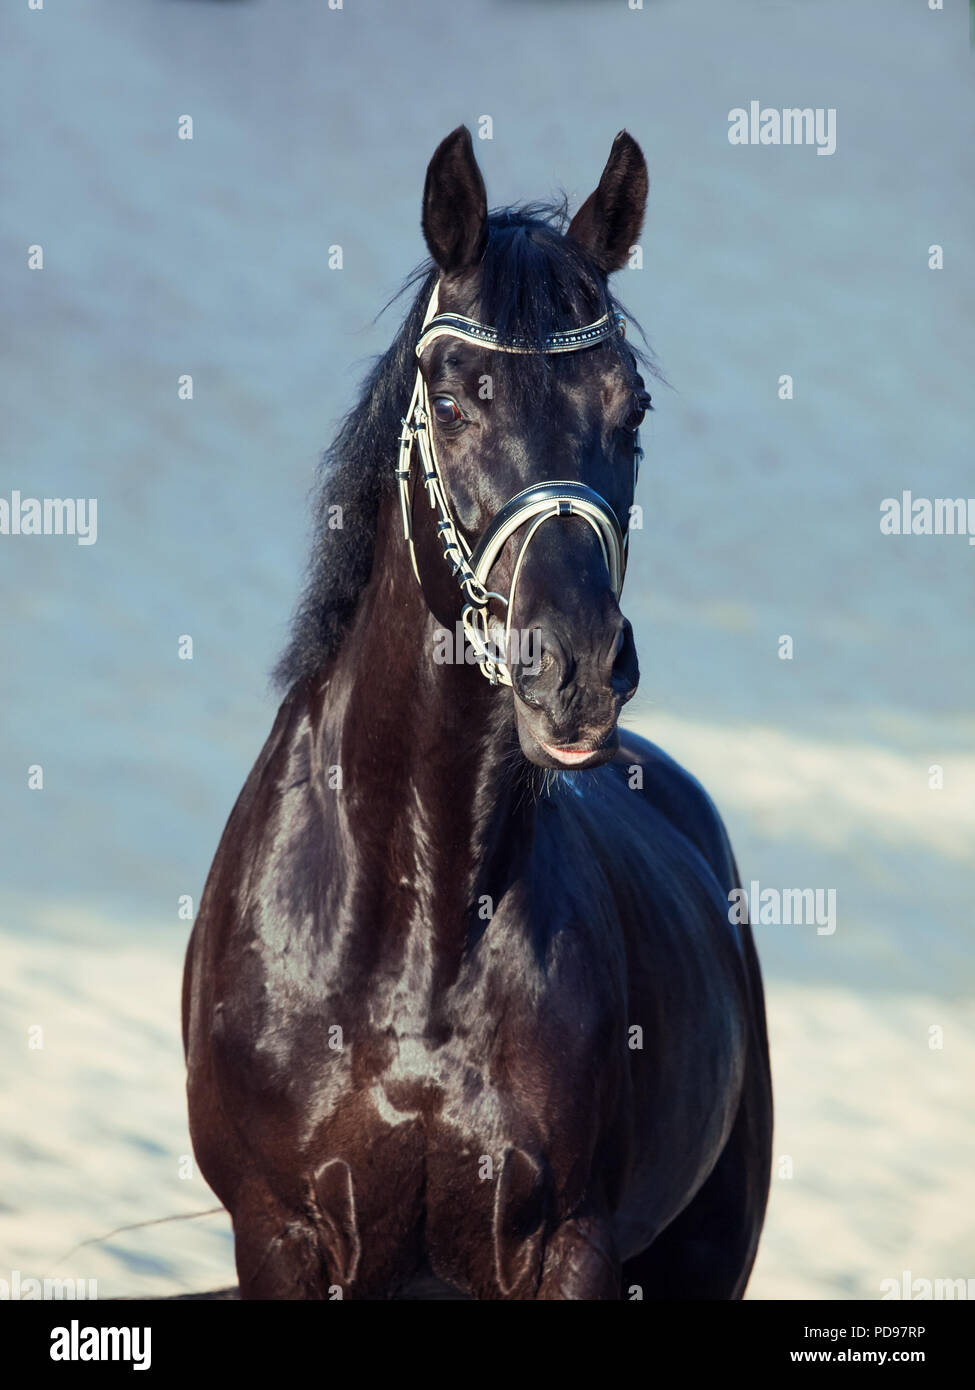 Beautiful Black Stallion Posing In The Desert Stock Photo Alamy